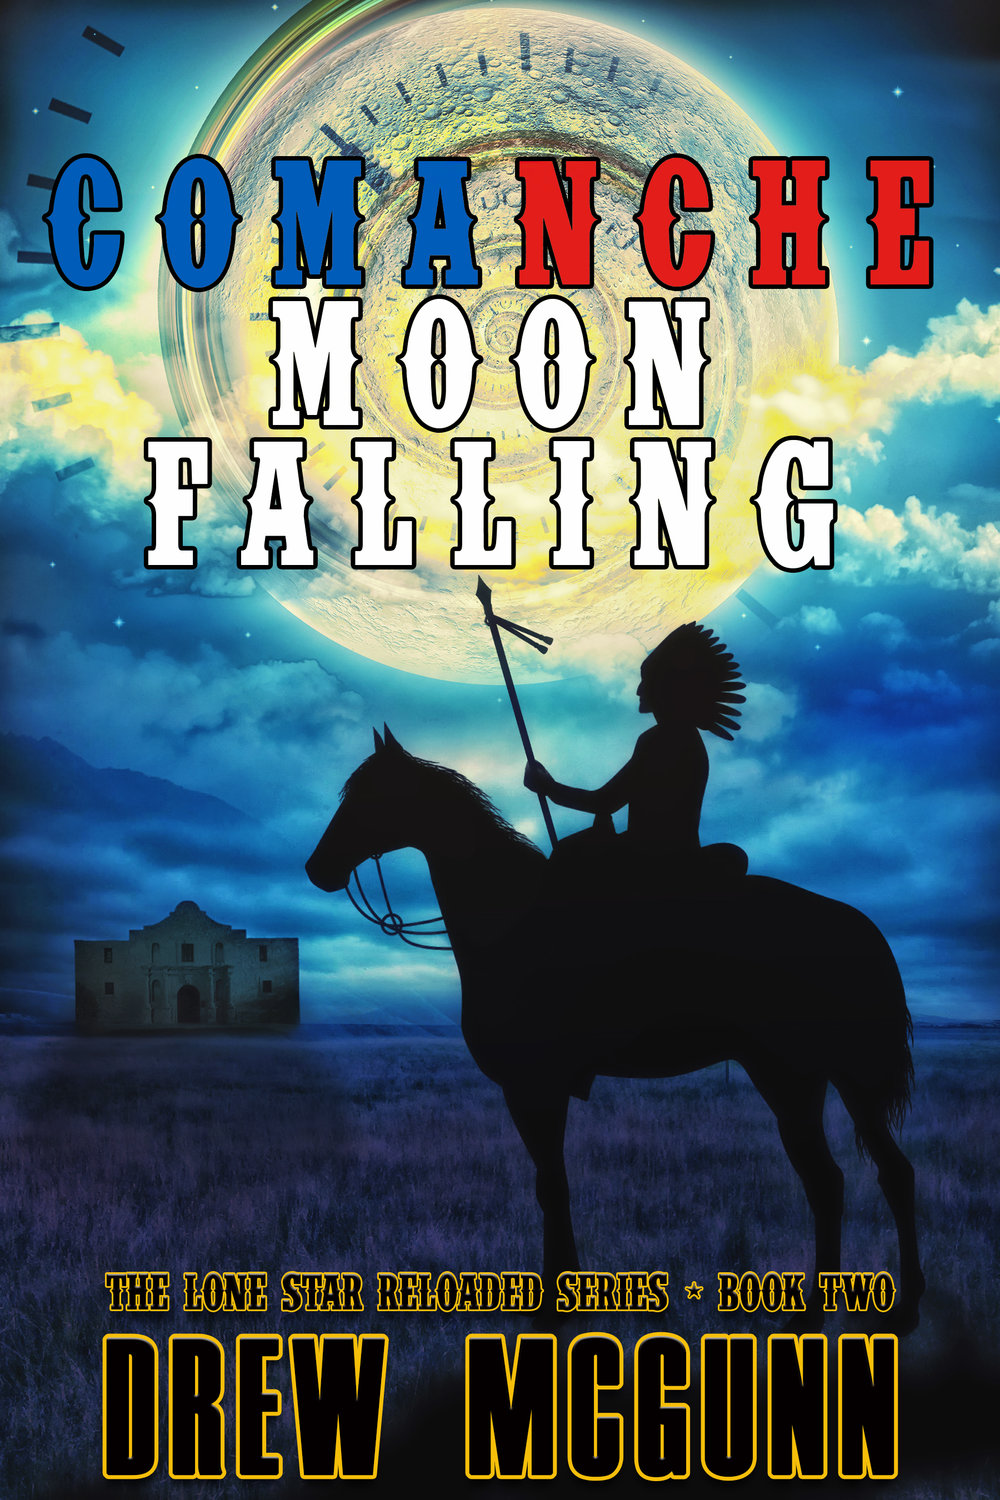 Comanche Moon Falling - Drew McGunn - off center.jpg